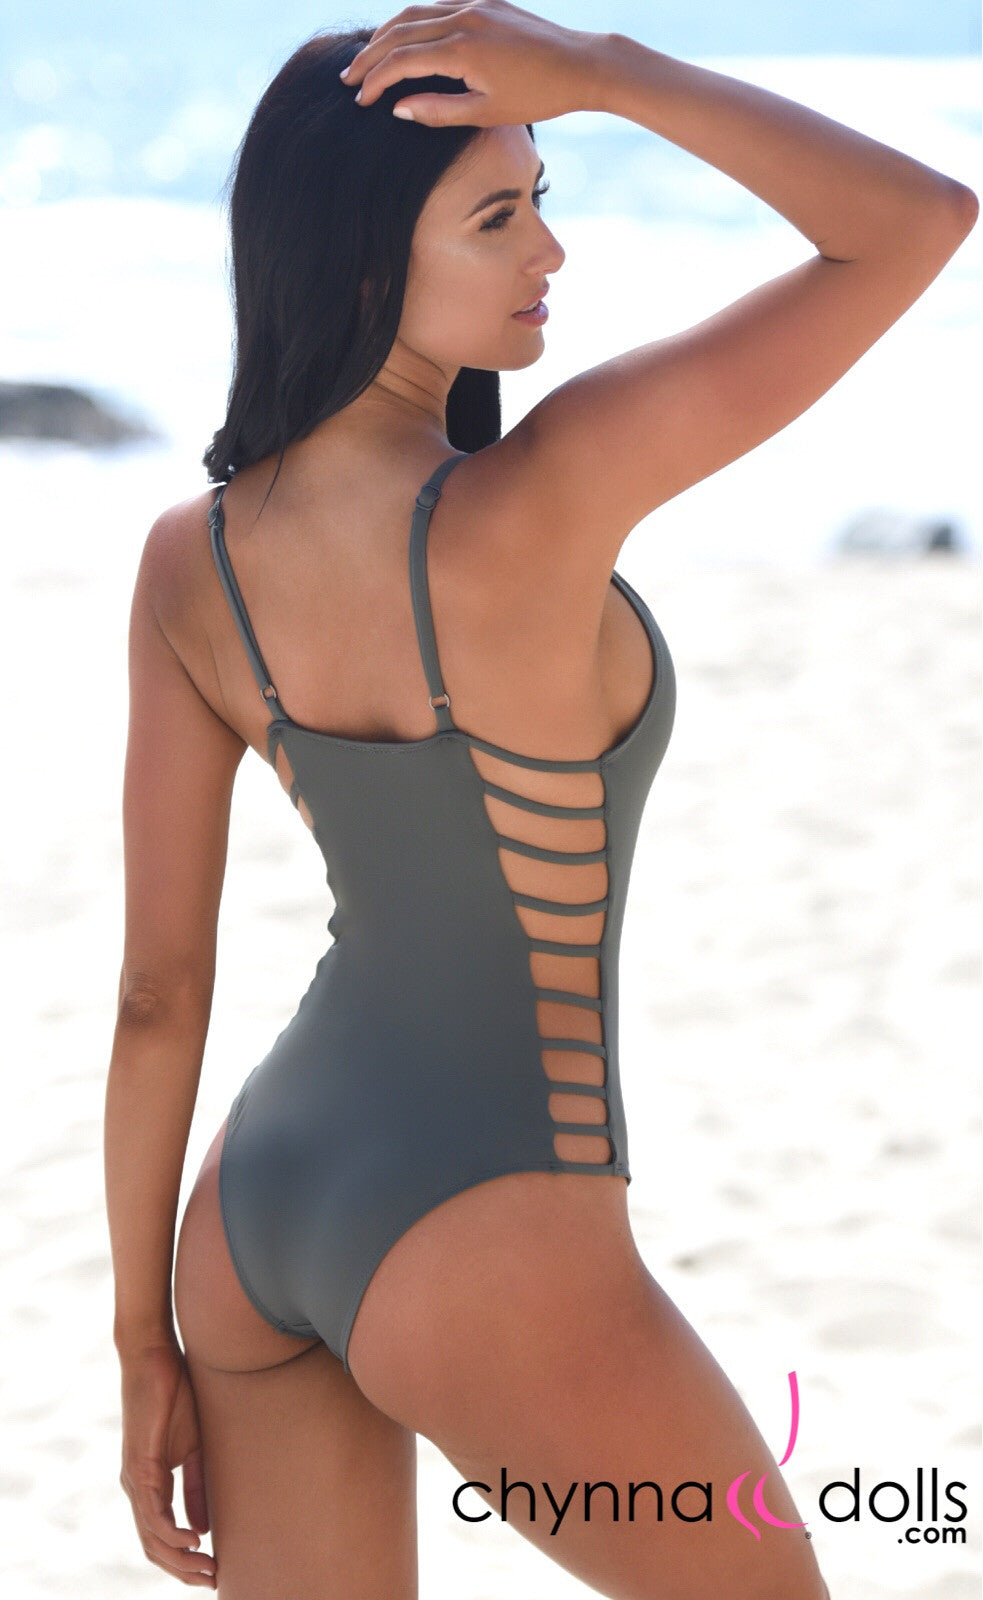 Tuscany: One Piece Swimsuit w/ Ladder Details at the Sides in Stone Gray - Chynna Dolls Swimwear